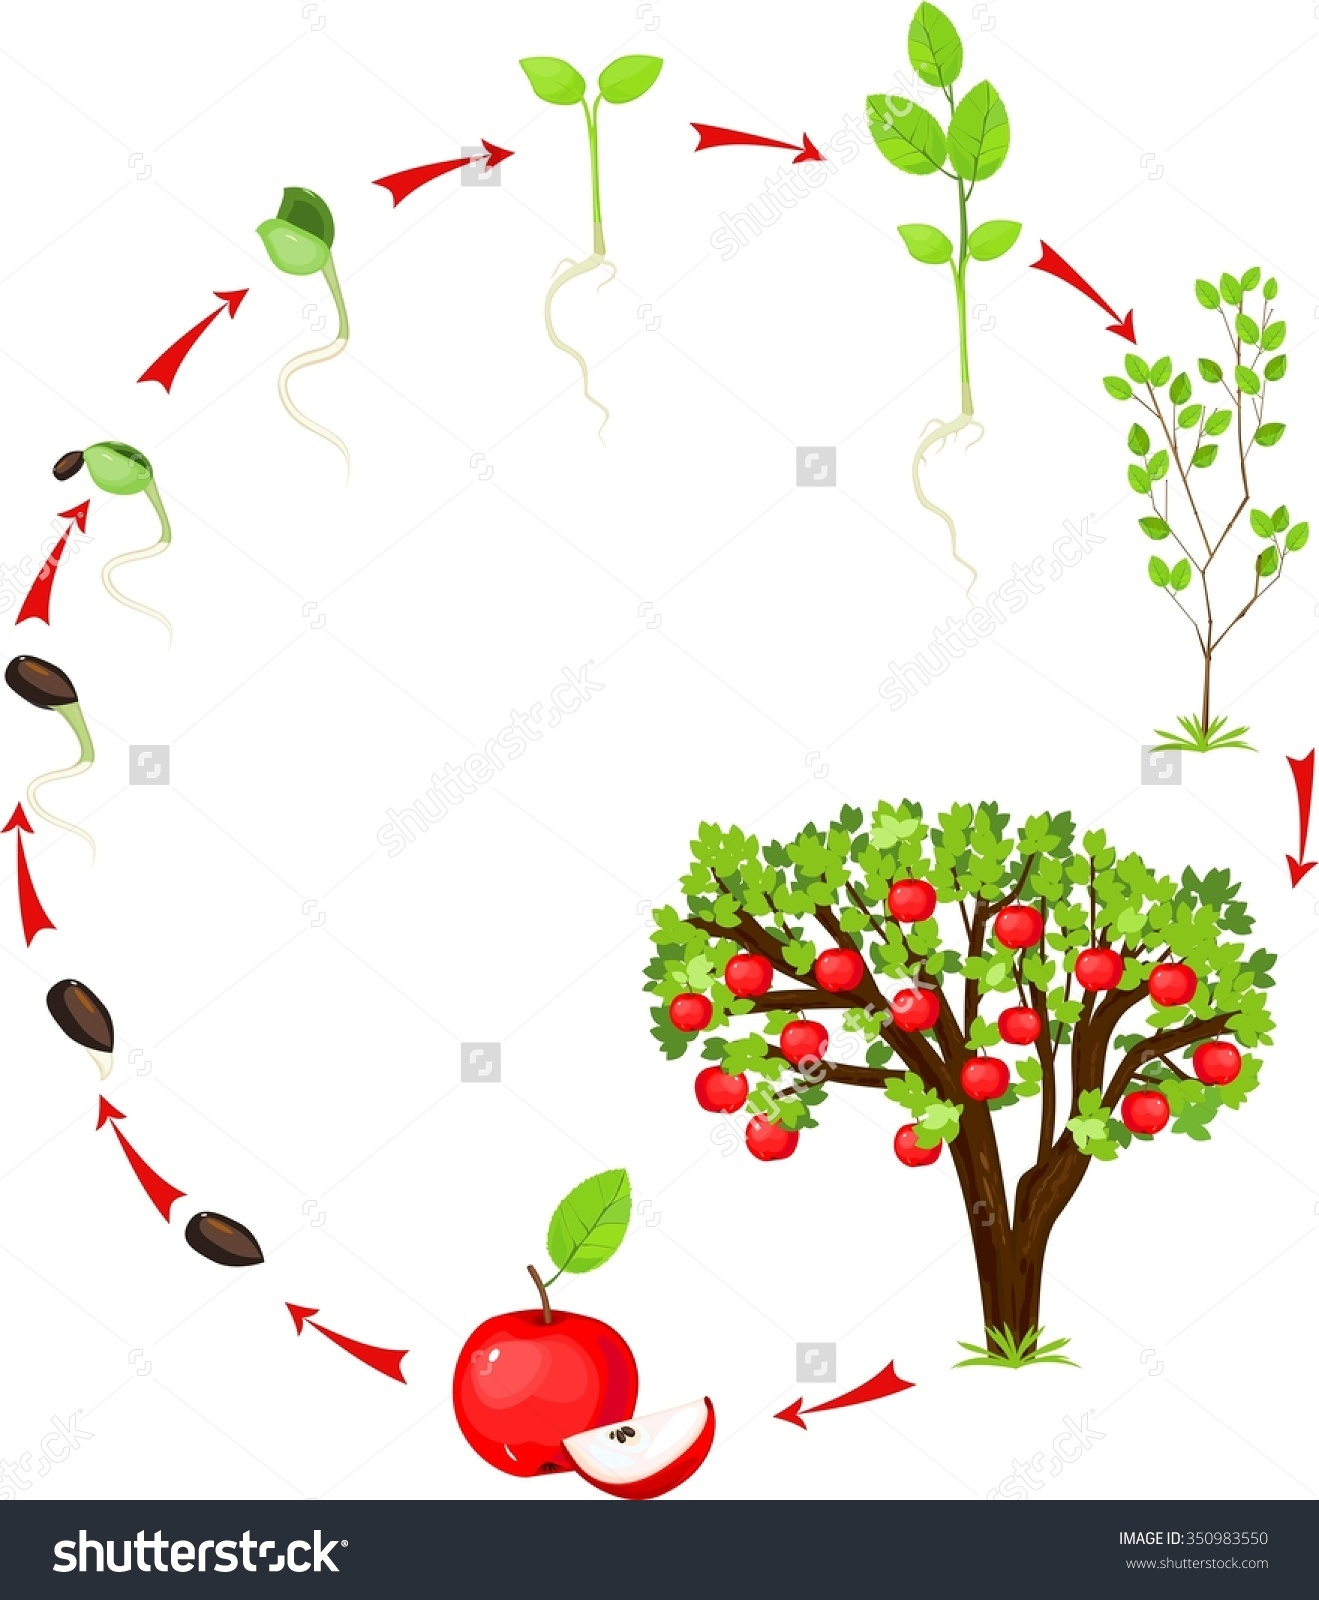 Seed clipart stage Cycle tree cycle collections clipart